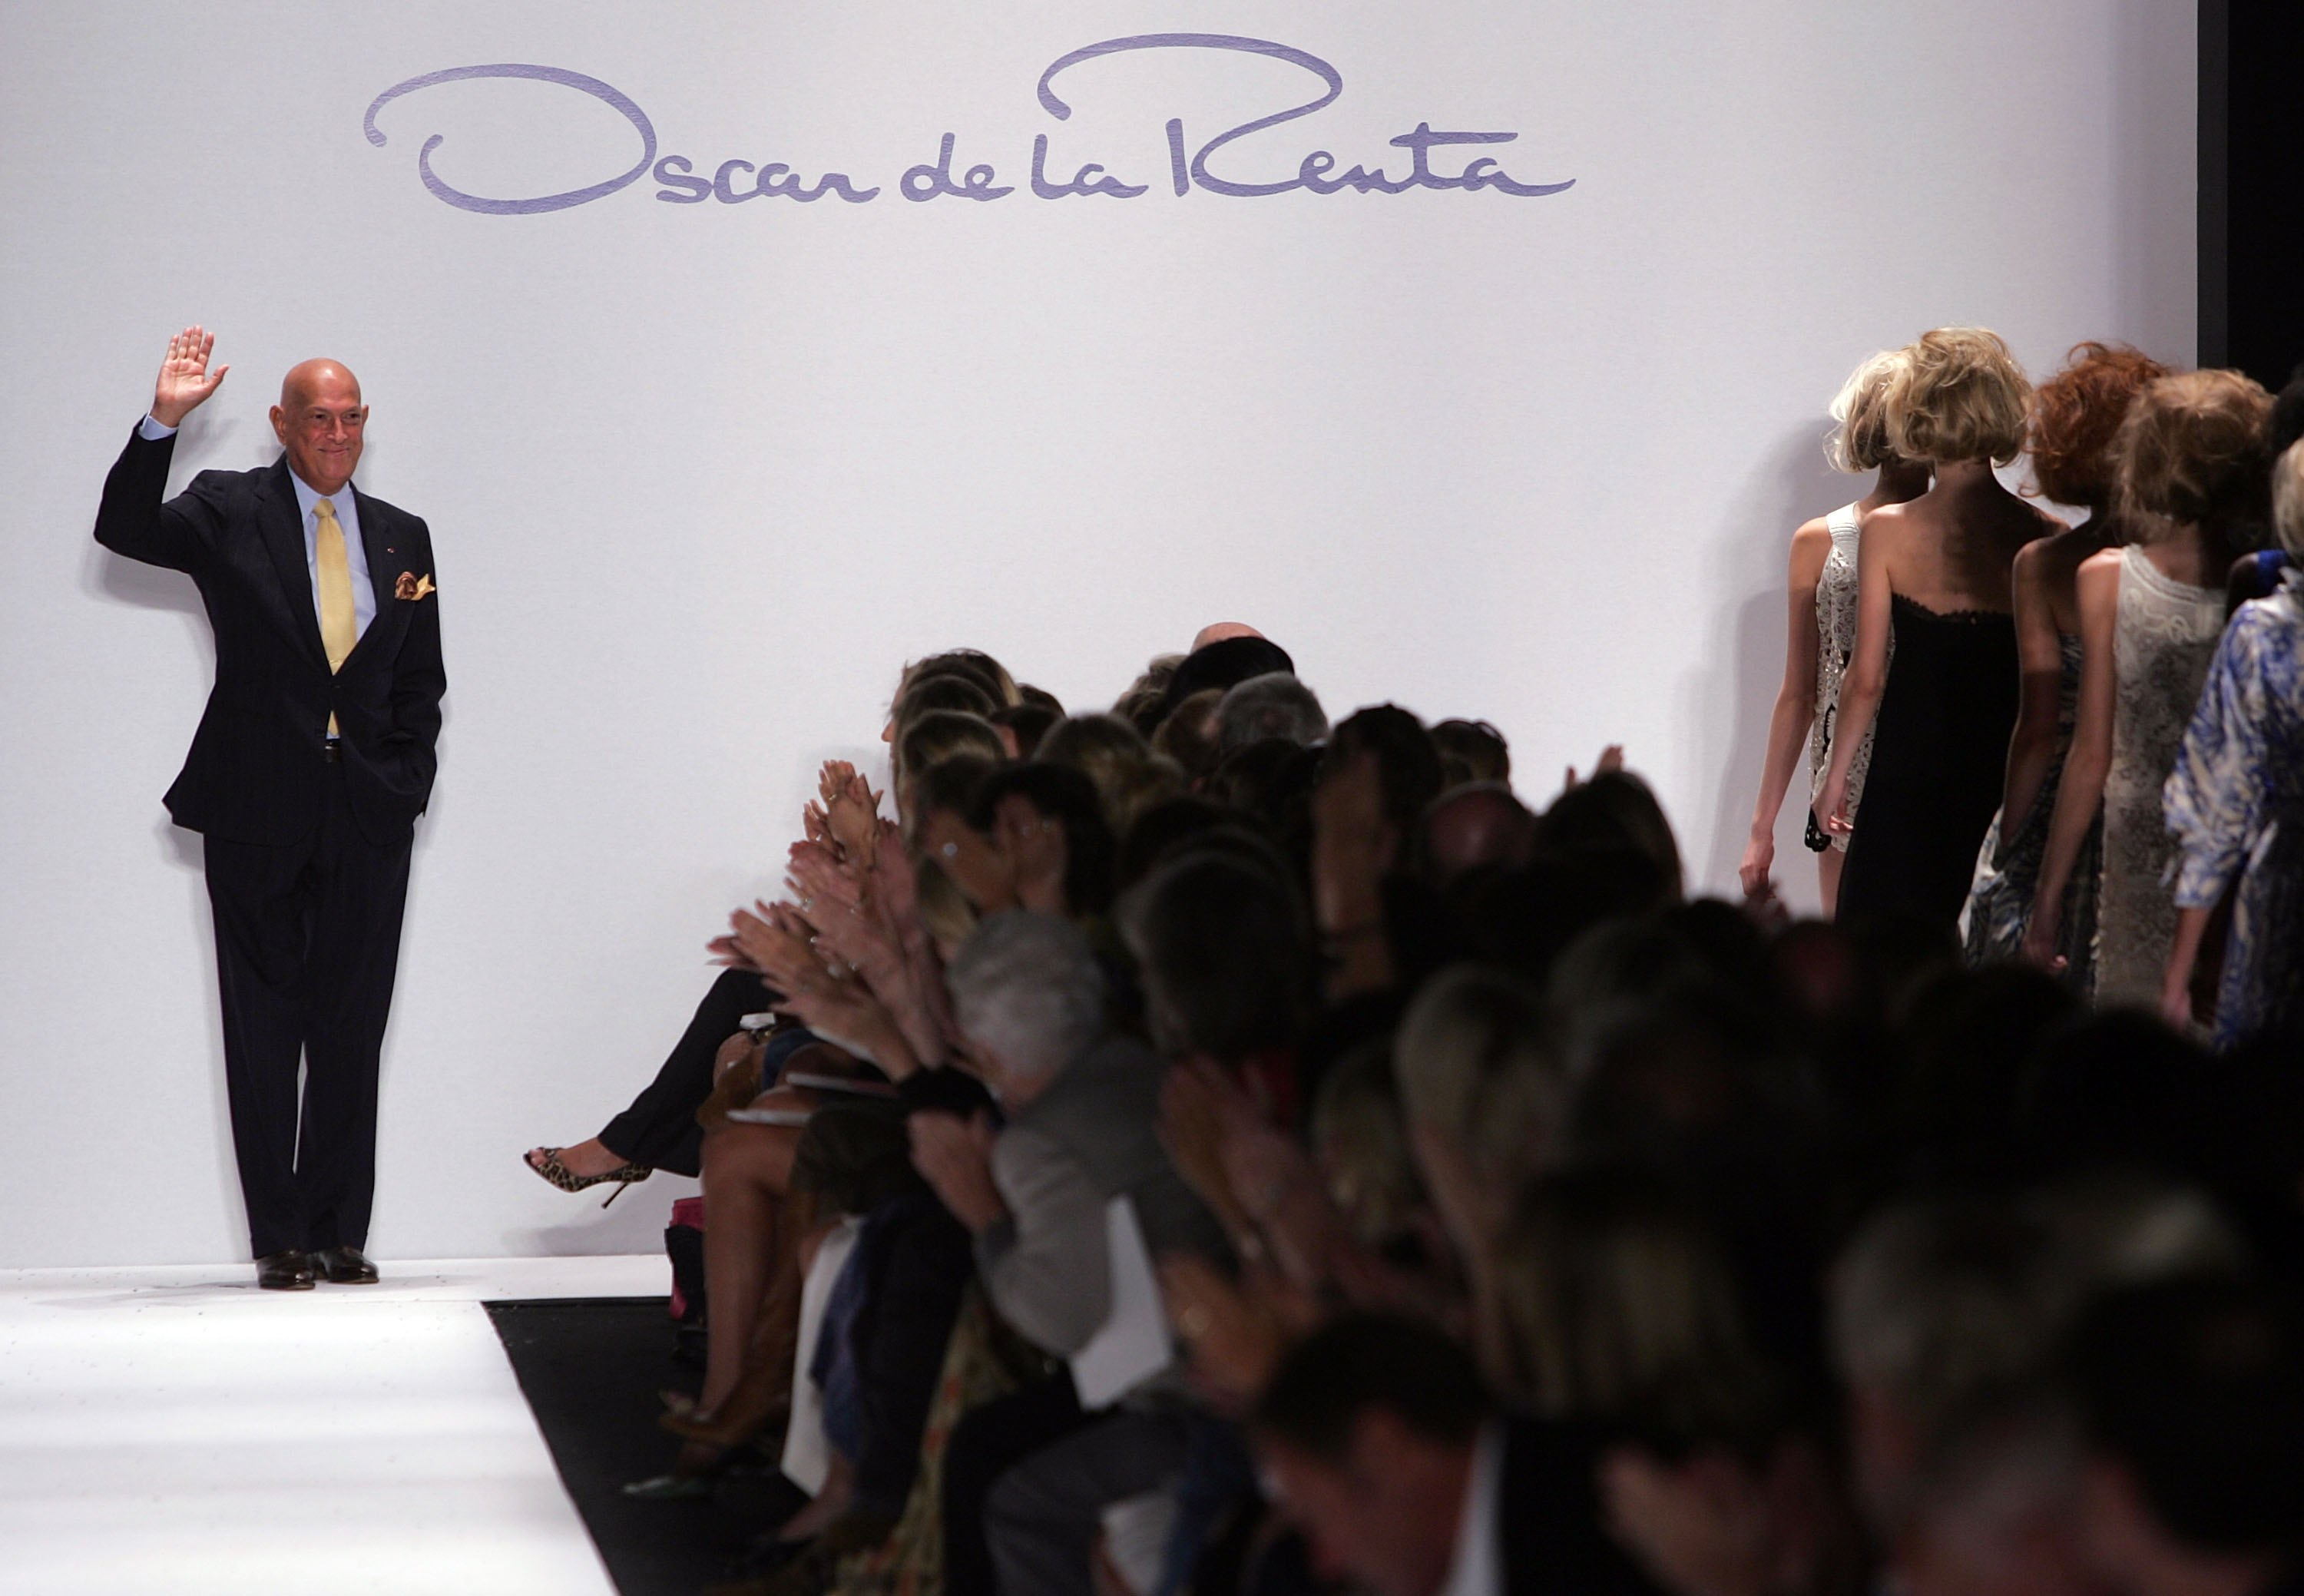 Oscar De La Renta At 82 Fashion Designer To Socialites Stars The Boston Globe